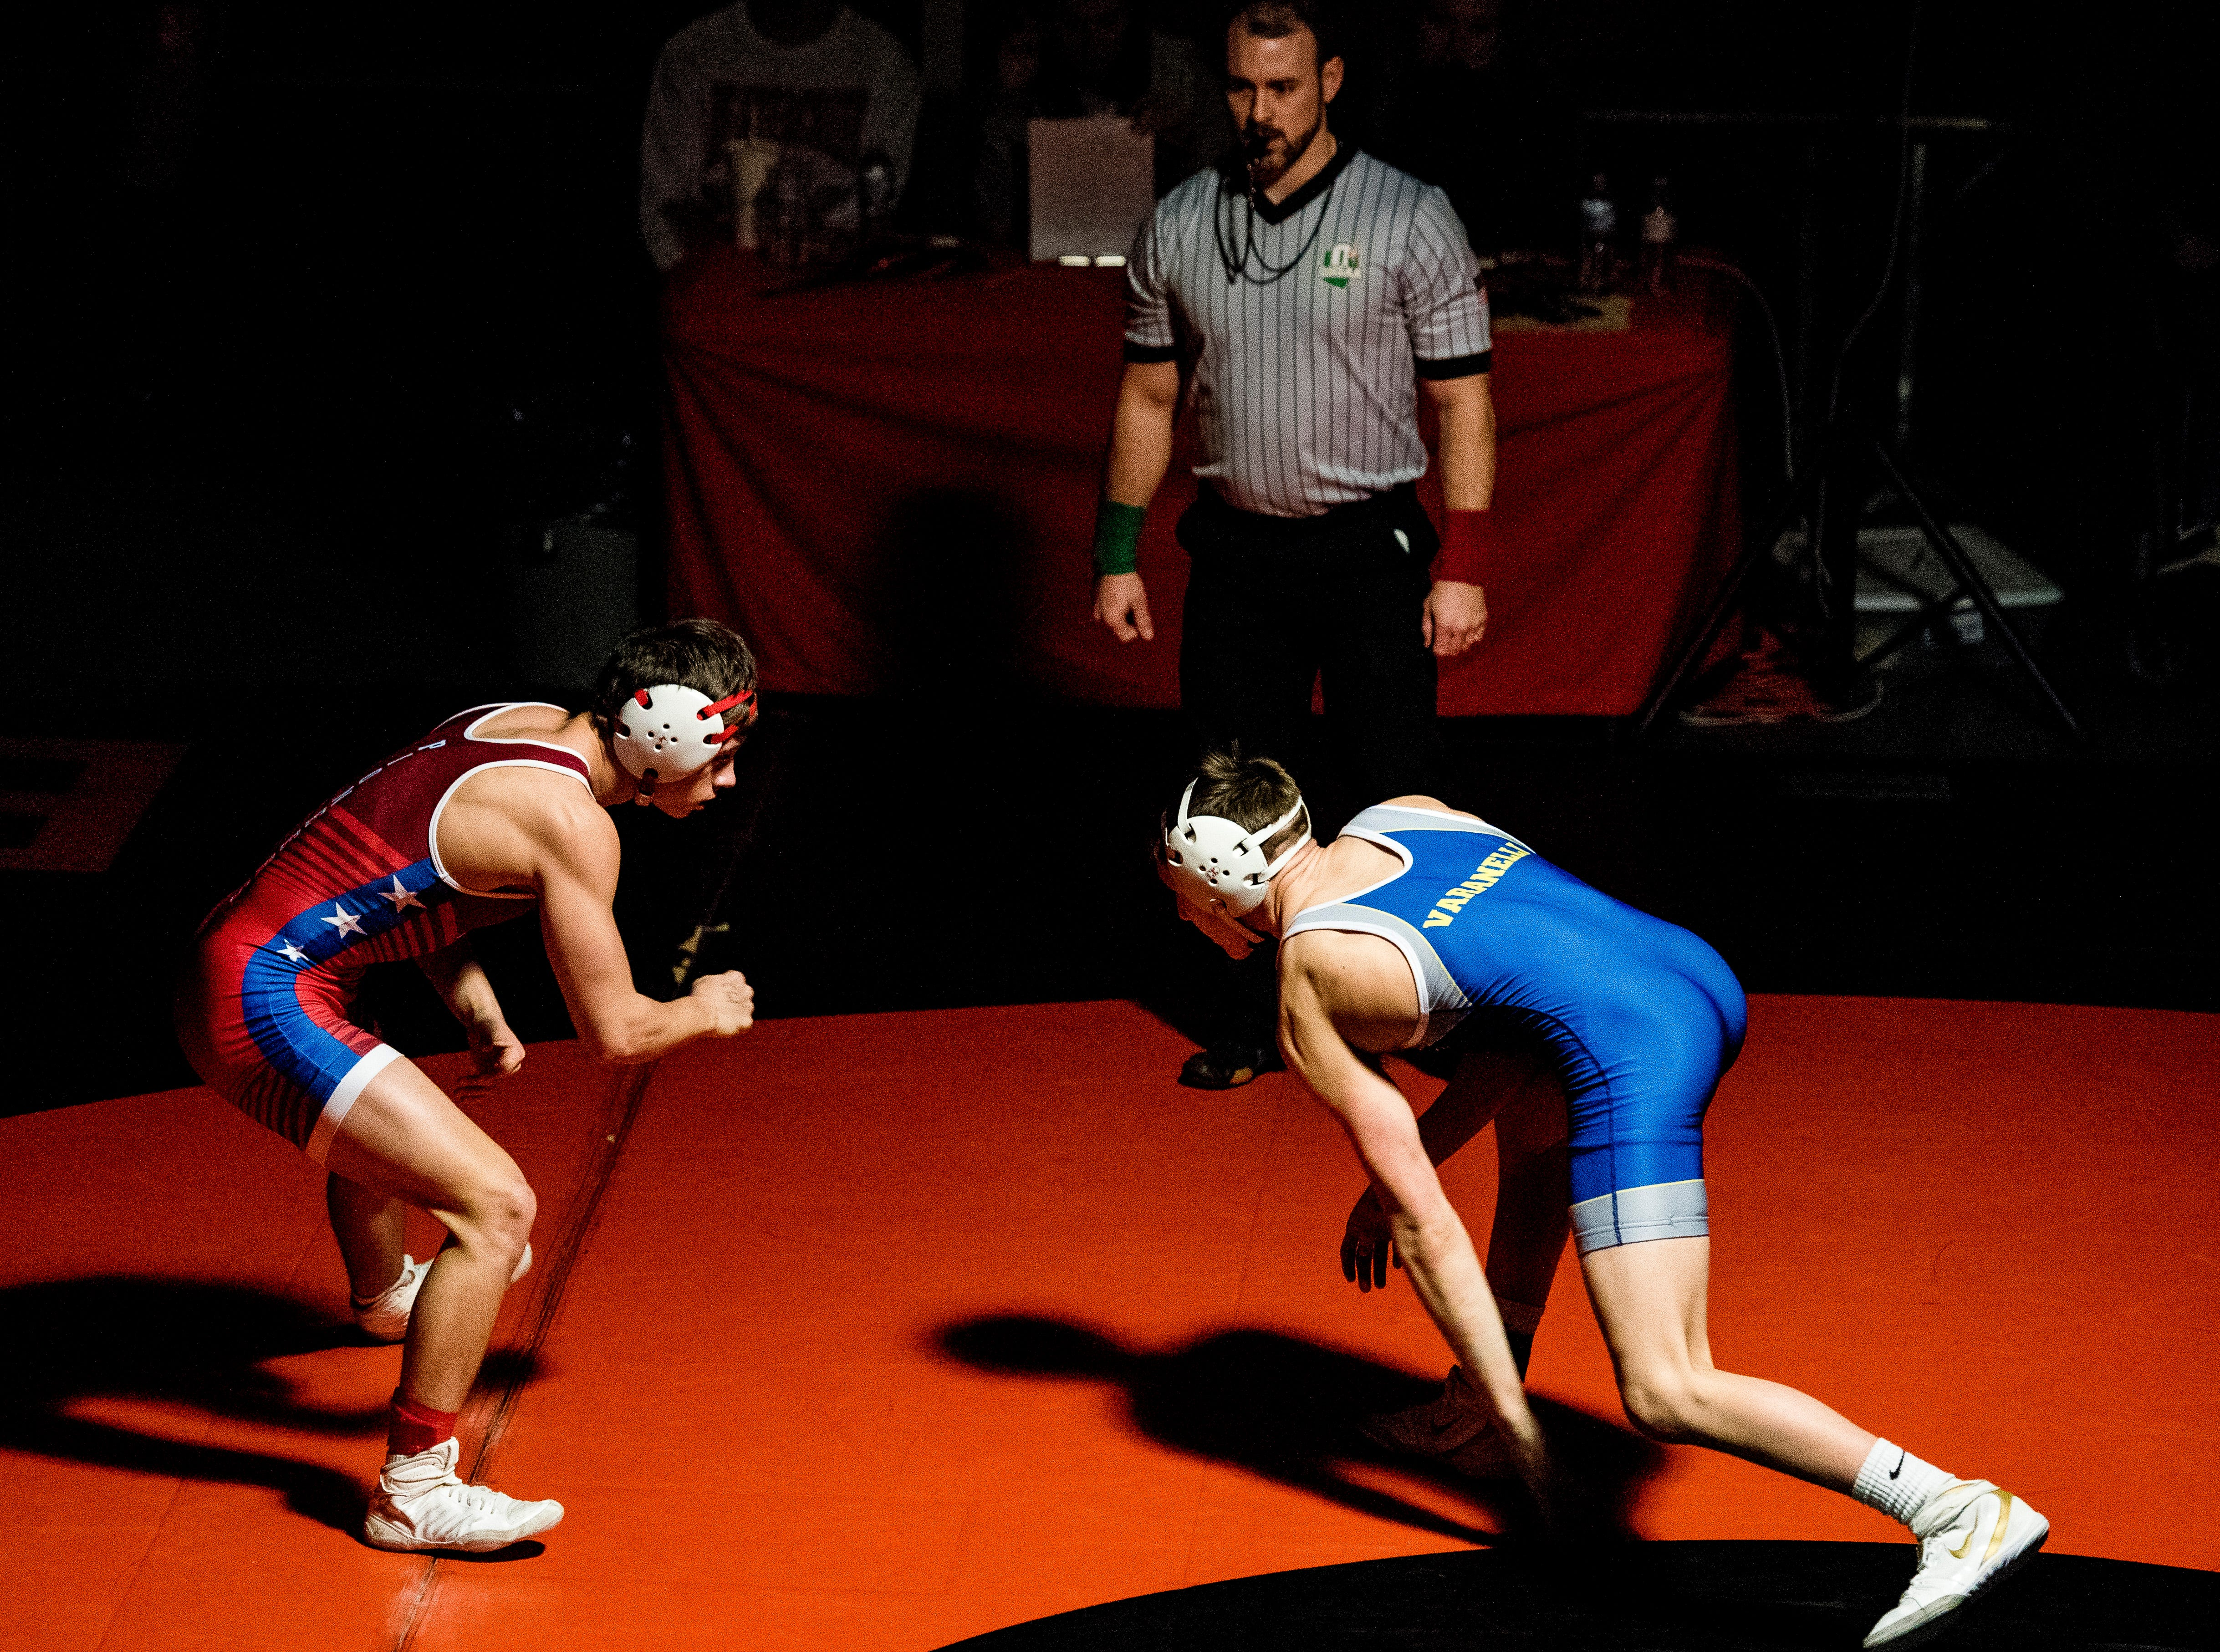 Zane Trace senior Jordan Hoselton wrestled under the Beavercreek championship spotlight Saturday at Beavercreek High School. Hoselton took second in the 132-pound weight class against Olentangy's Nick Varanelli.